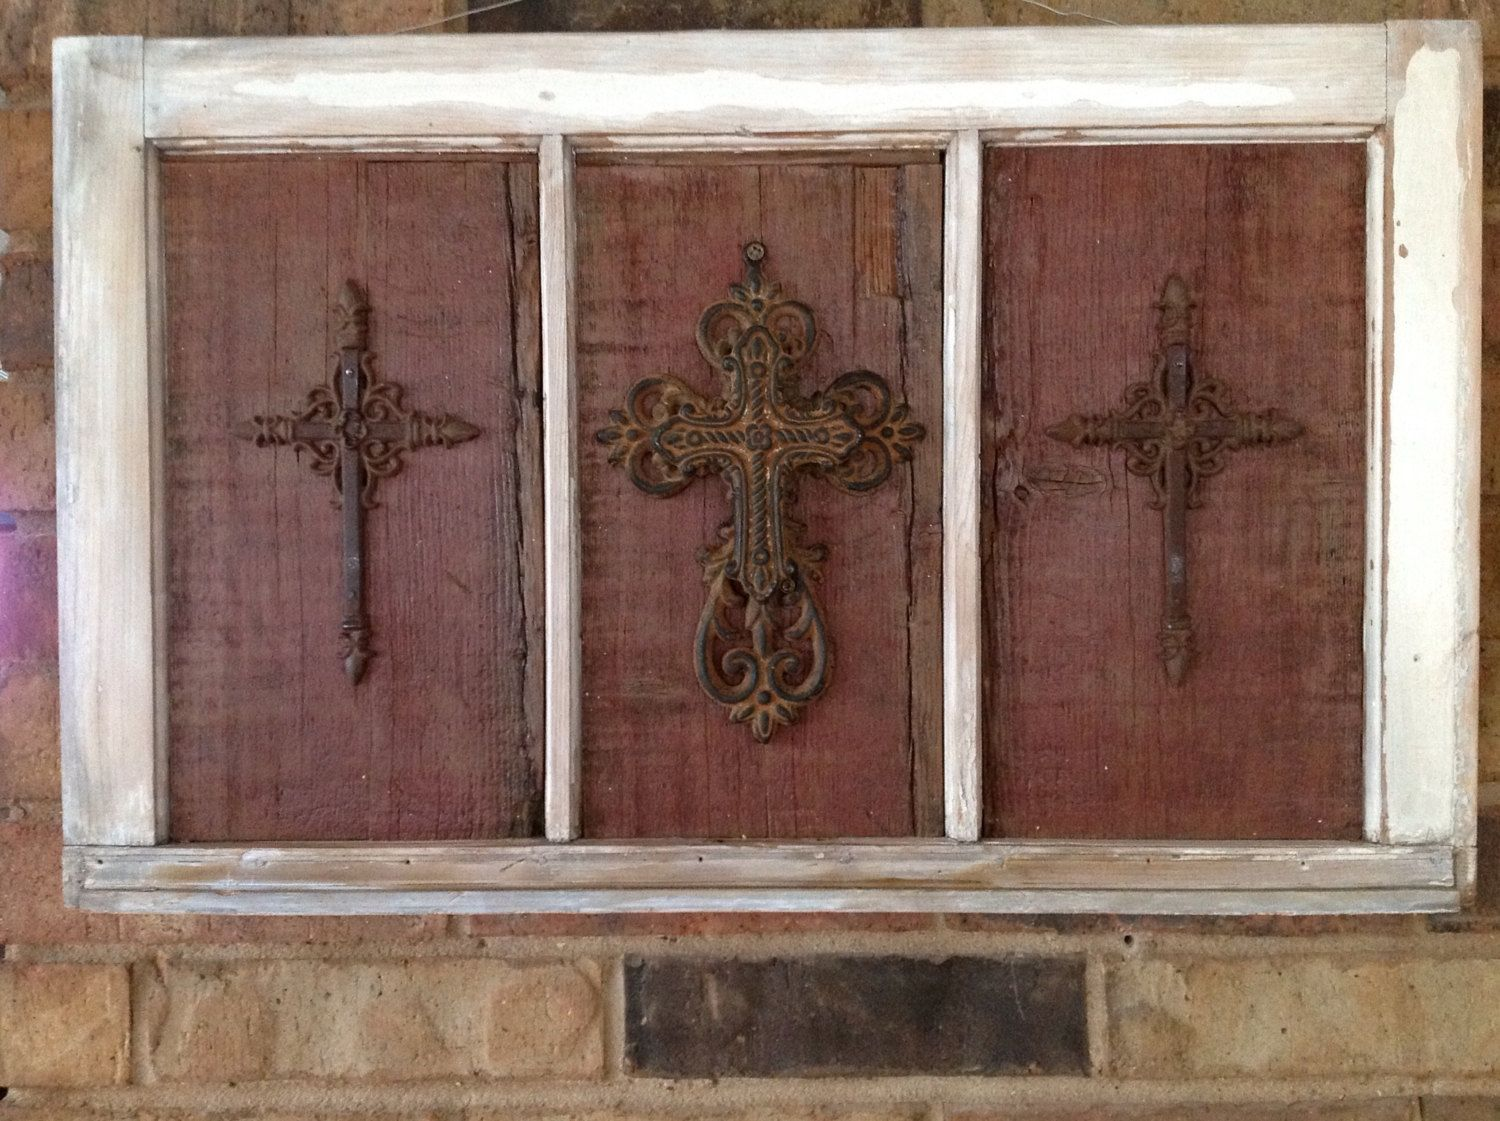 Window frame decor with wreath  antique salvaged rustic window with salvaged barnwood and metal